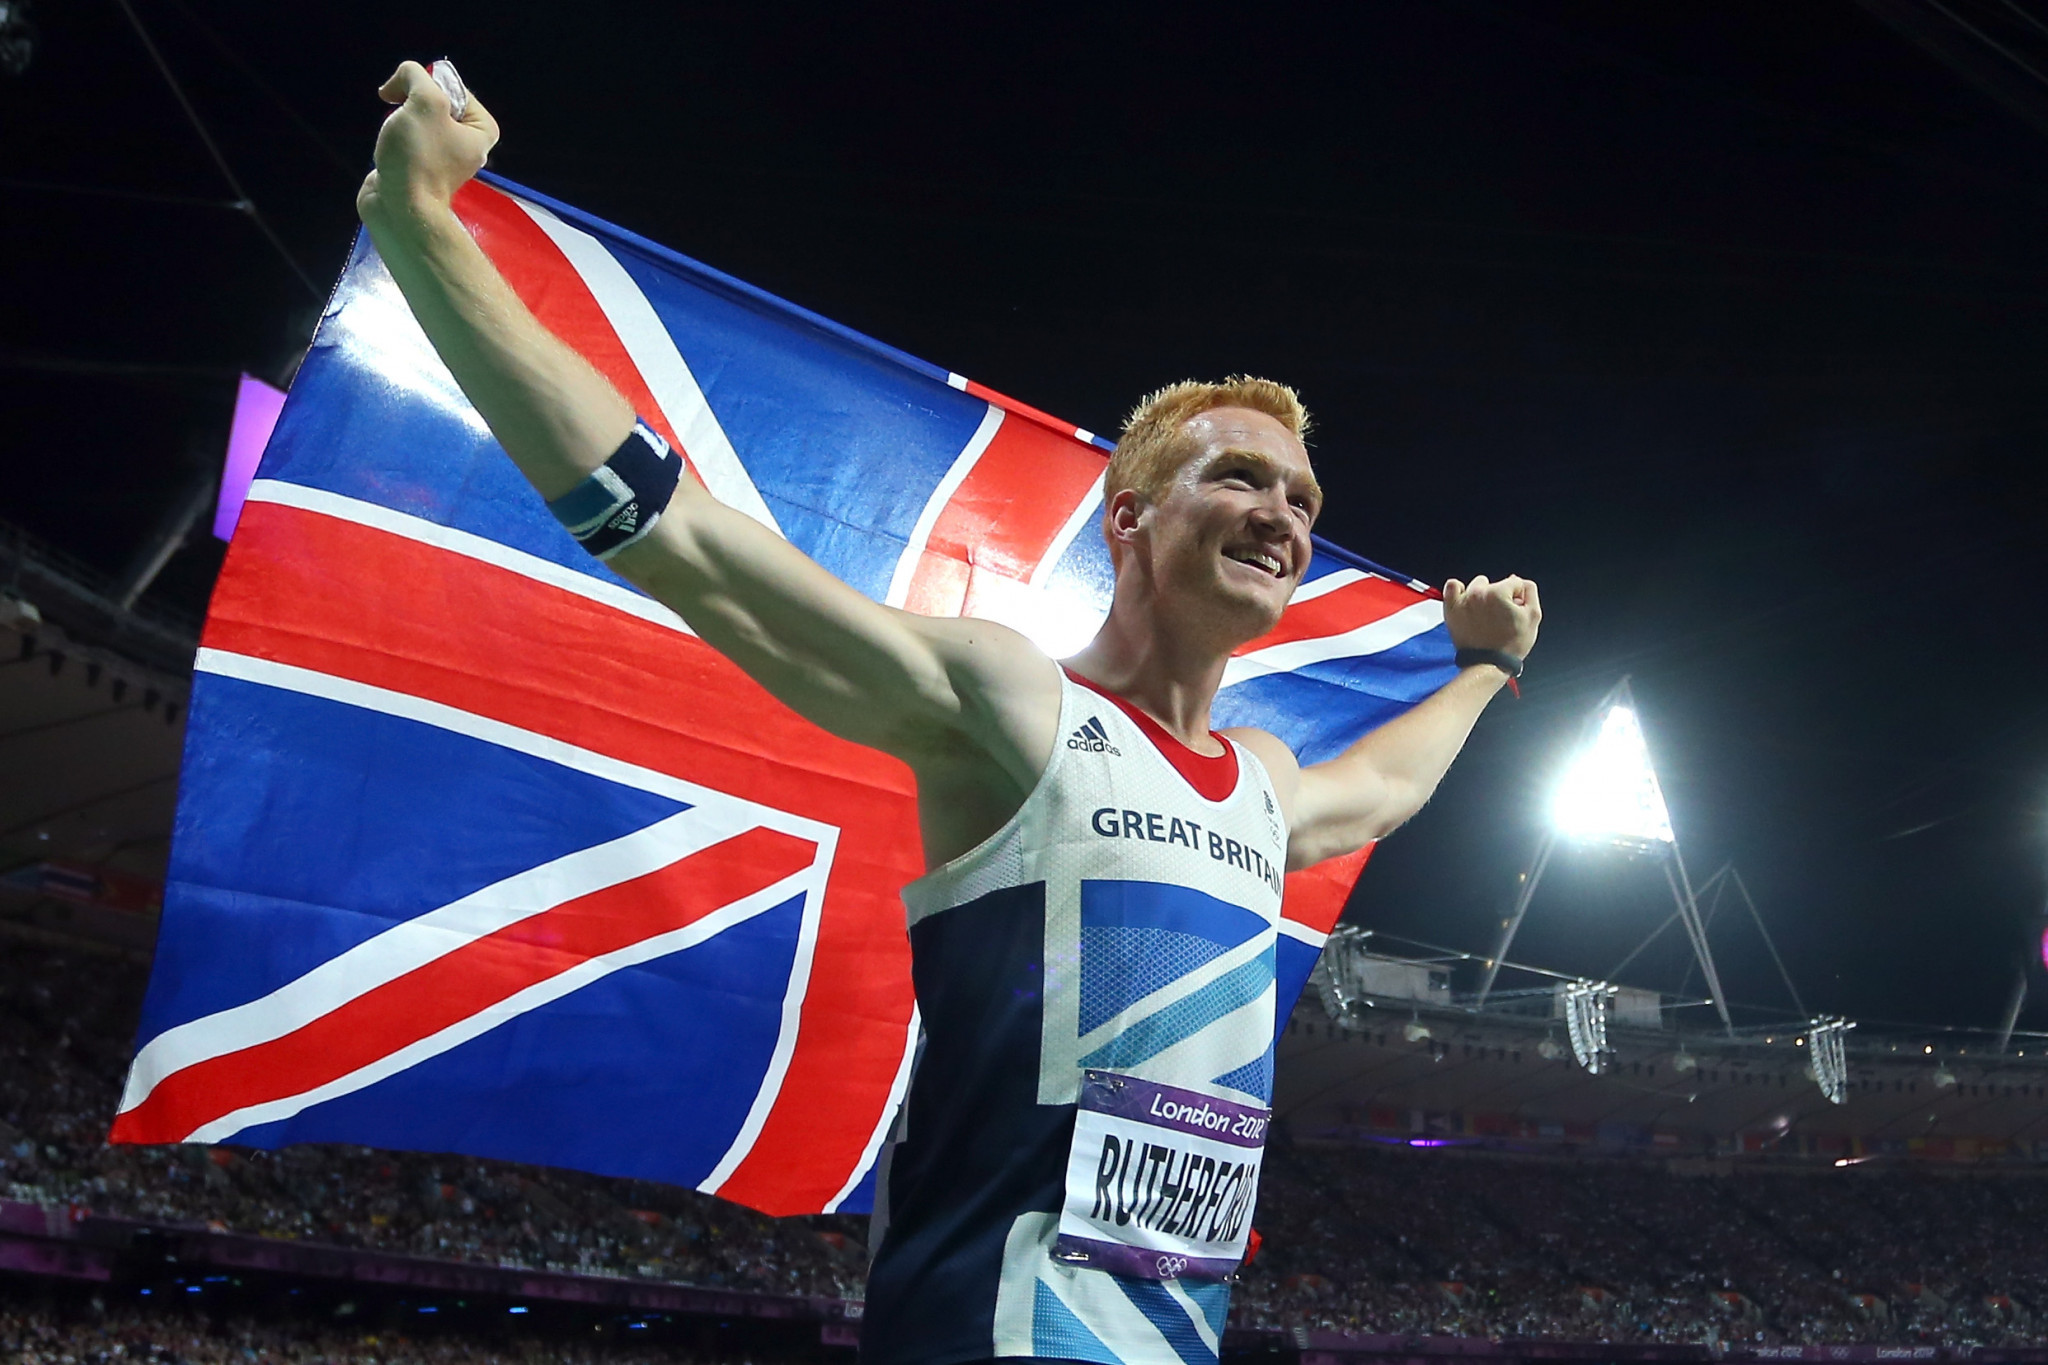 Olympic long jump champion Rutherford makes British bobsleigh squad